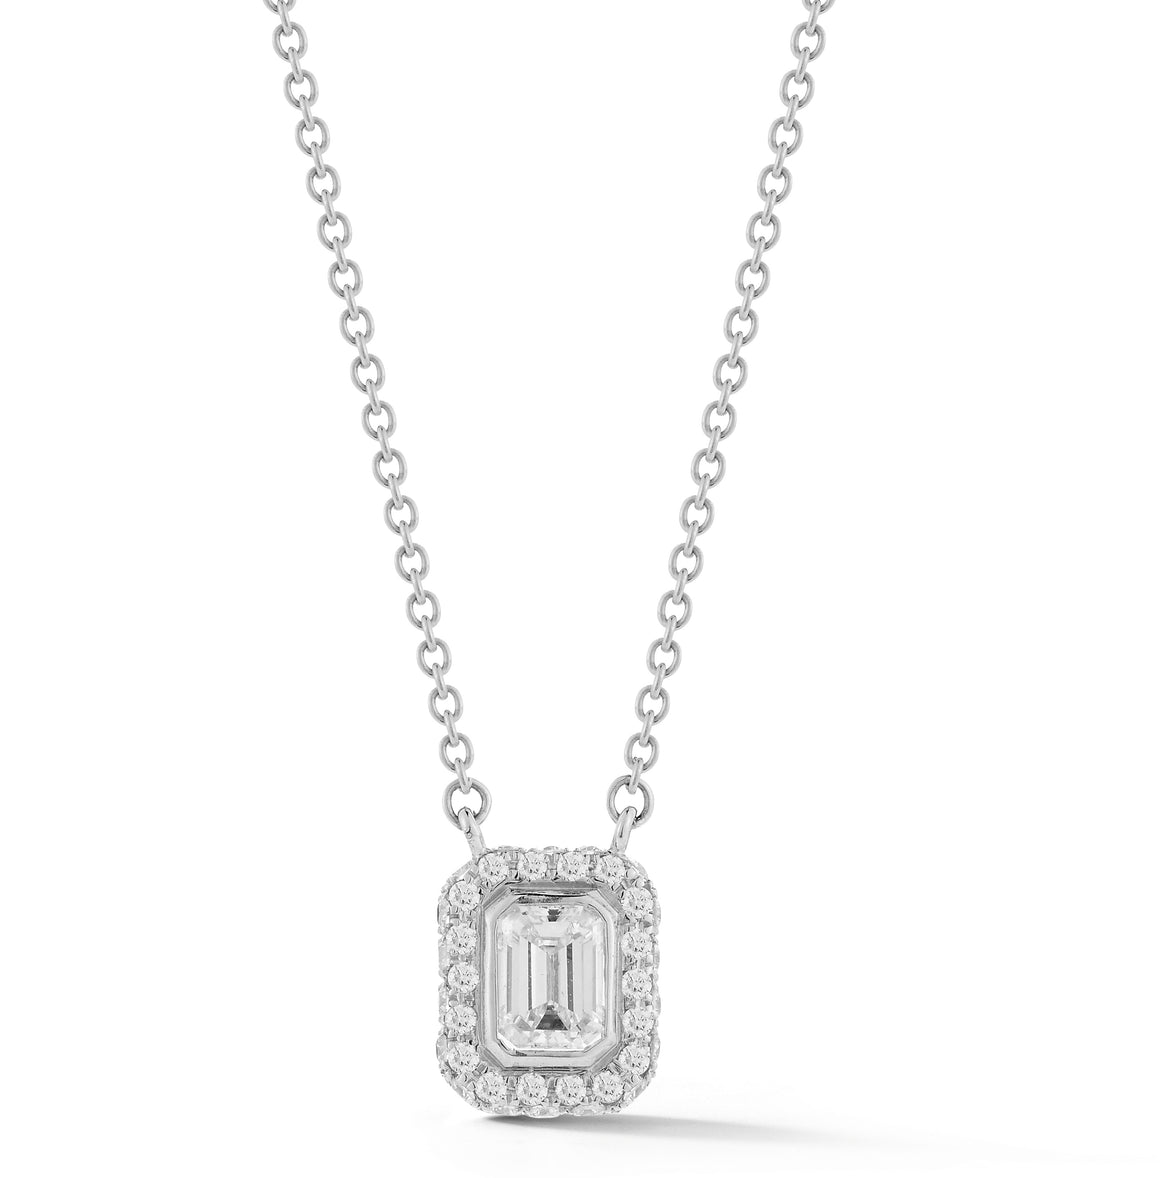 18k White Gold Emerald-Cut Diamond Halo Necklace - Talisman Collection